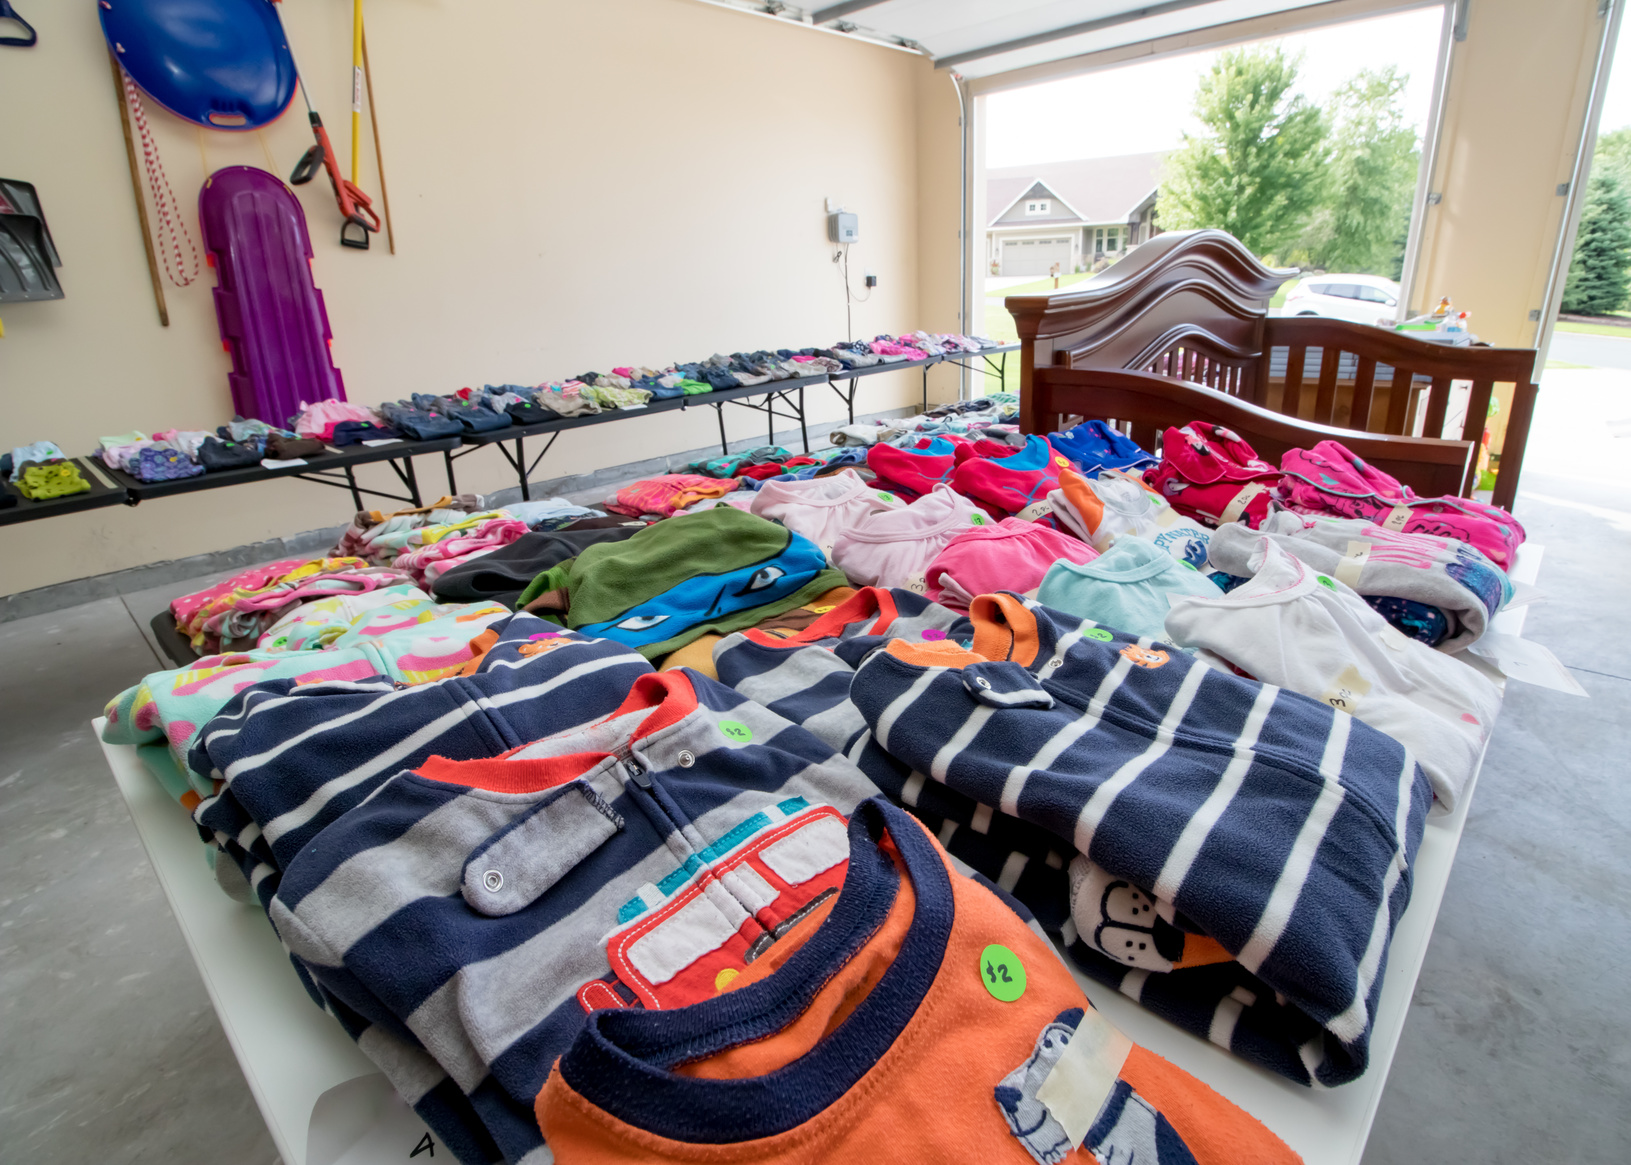 Garage-Sale-Clothes-on-Table